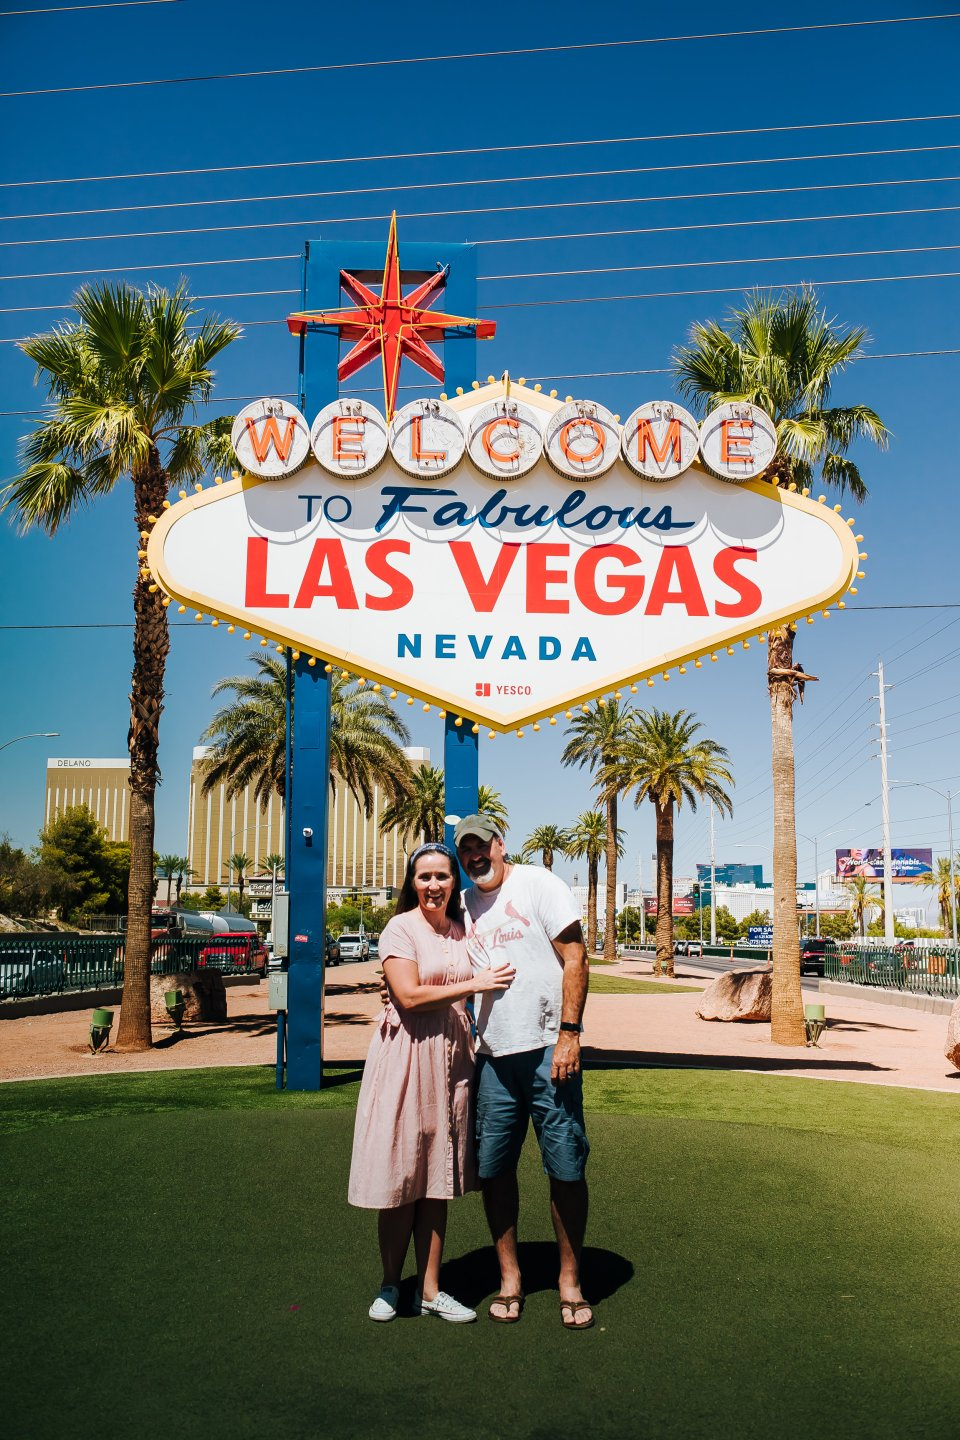 My husband and I in front of the Las Vegas sign | OUR 4 DAY LAS VEGAS TRIP | J.B. TOLS